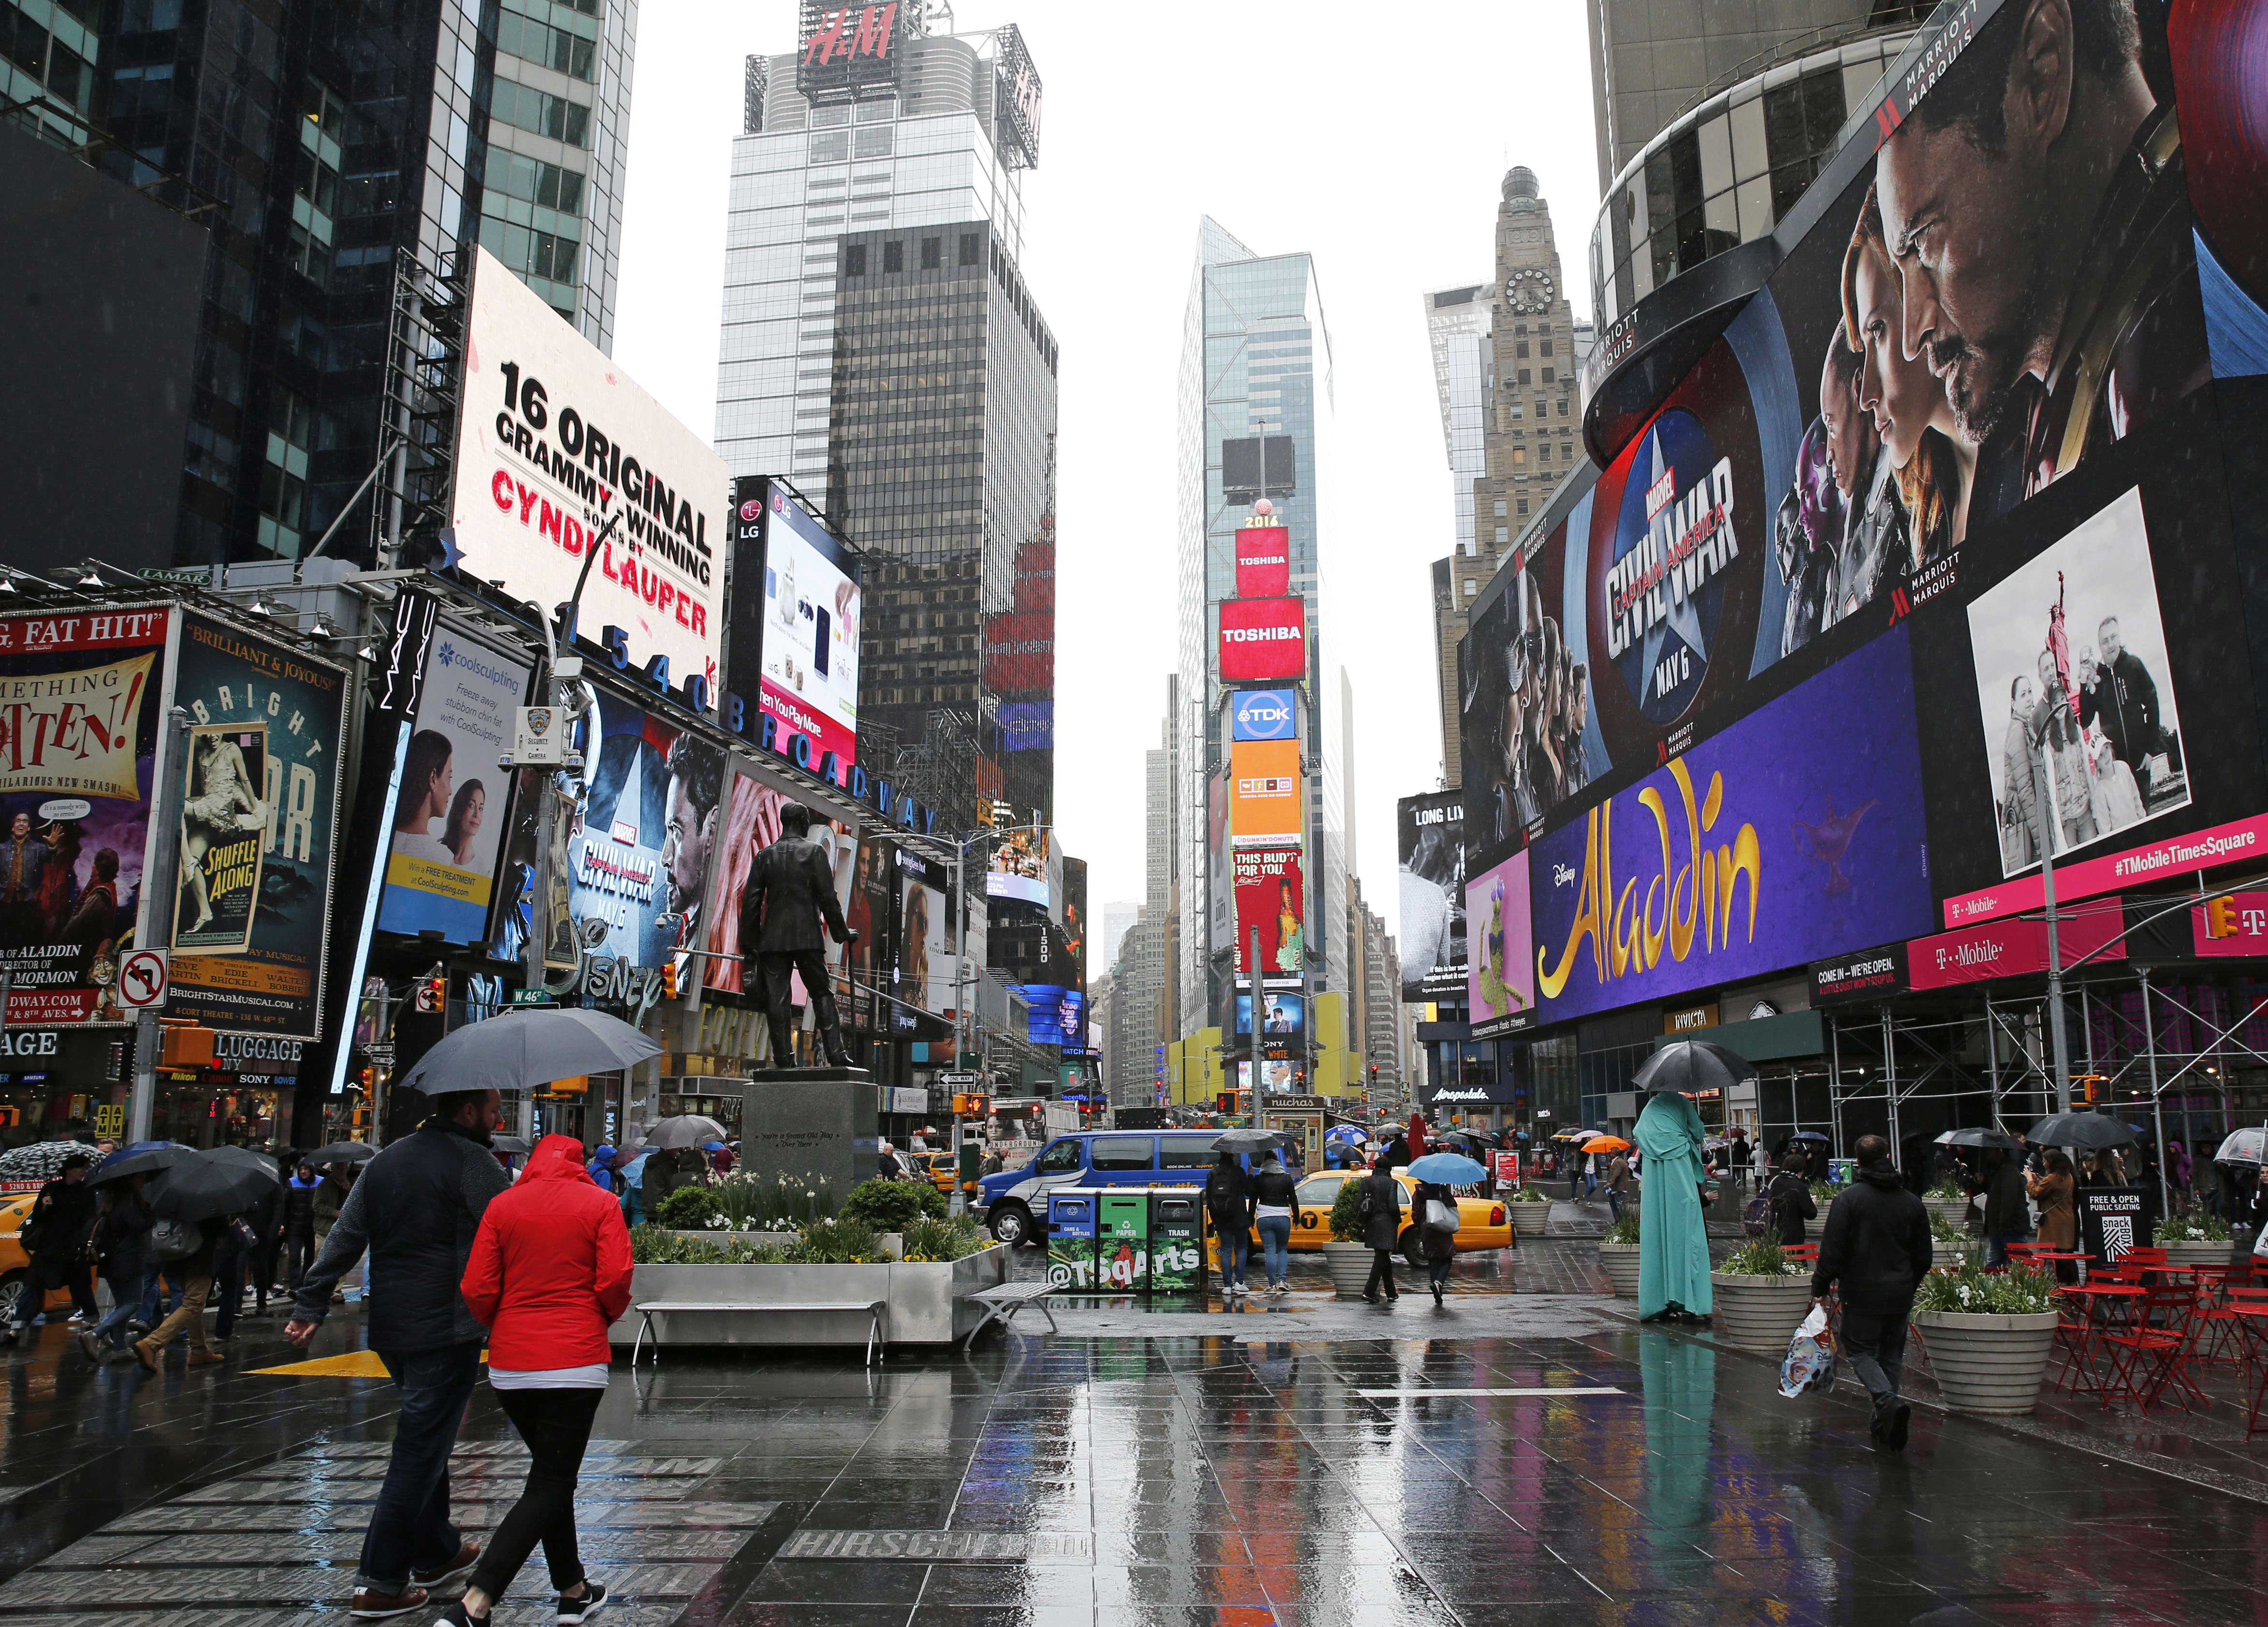 new york schumer probe billboards using phone data to track shoppers. Black Bedroom Furniture Sets. Home Design Ideas